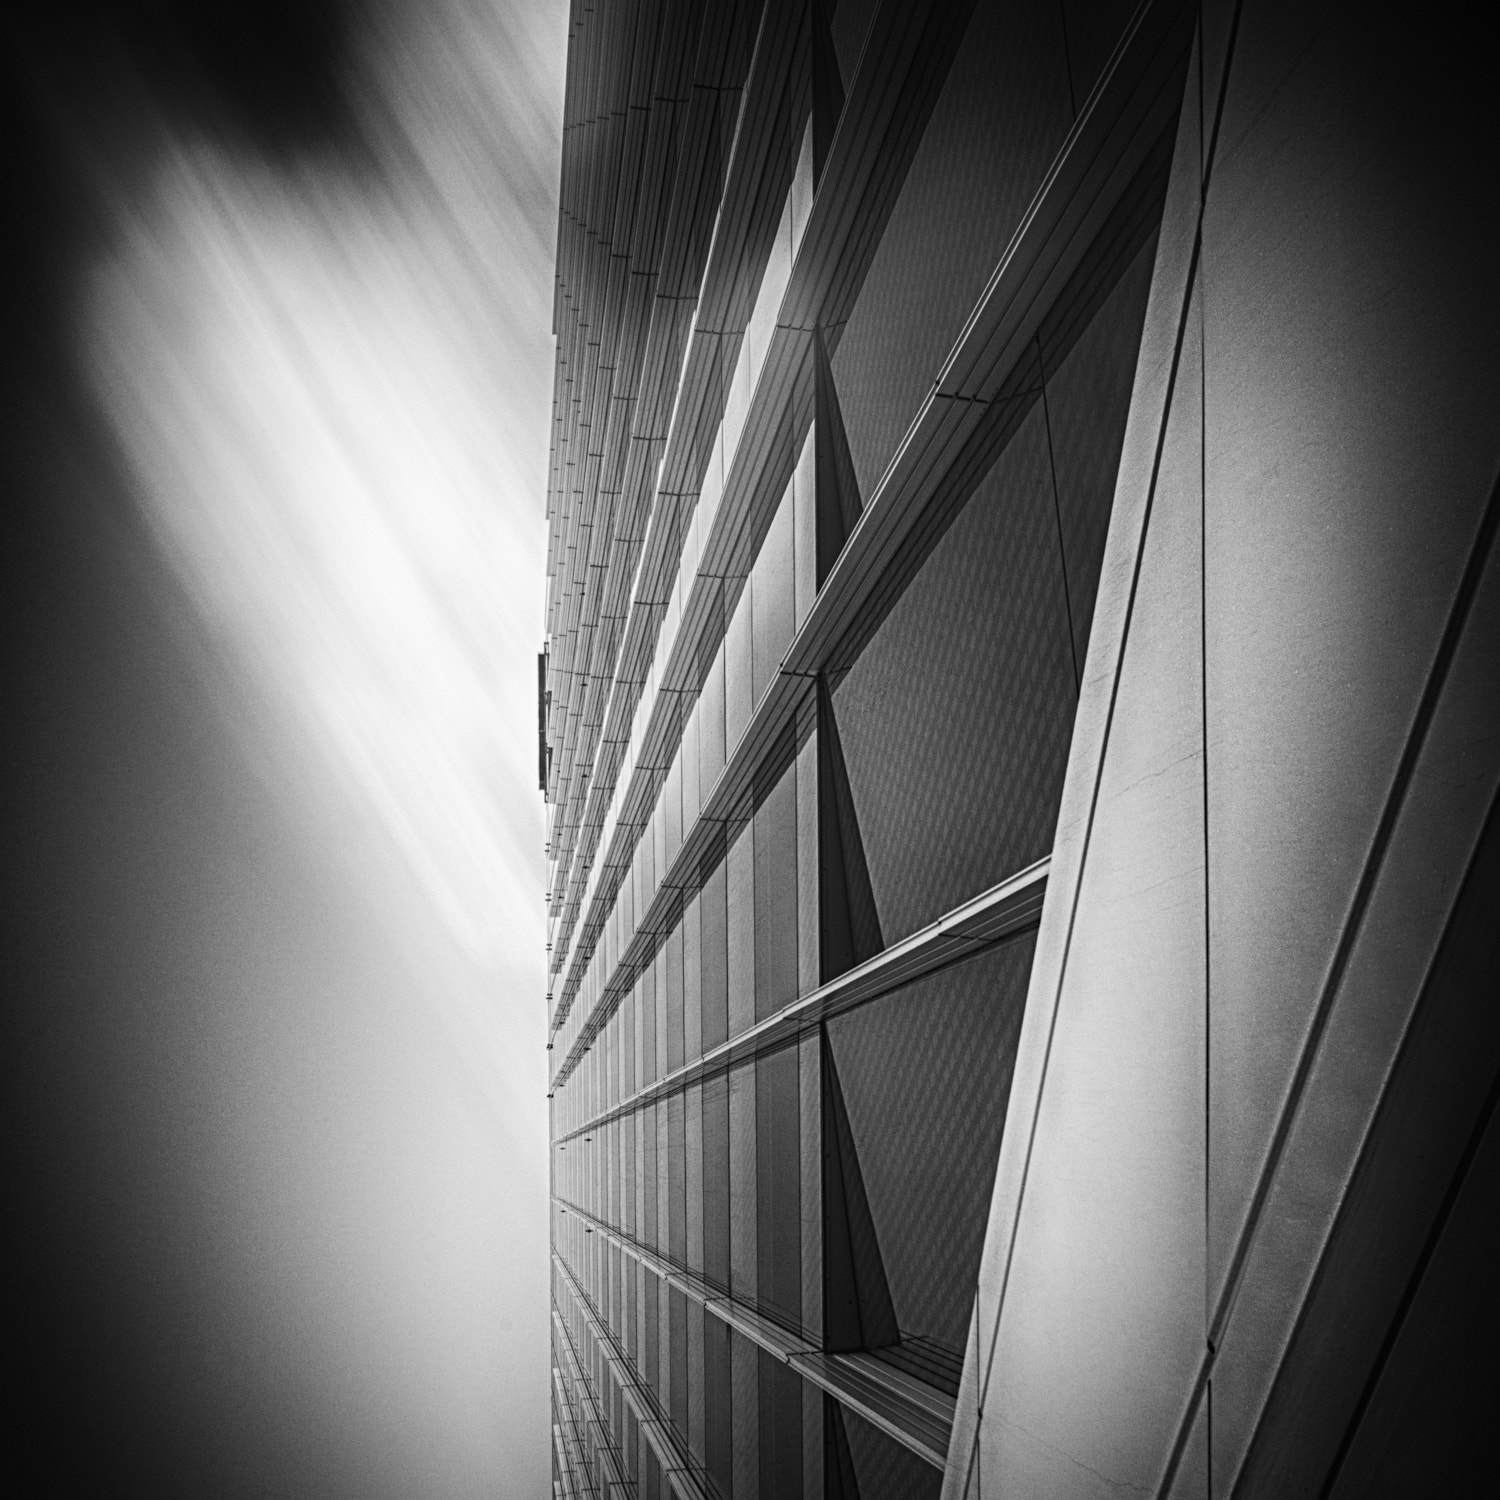 Photograph Corporate Imbalance by Frank van Haalen on 500px